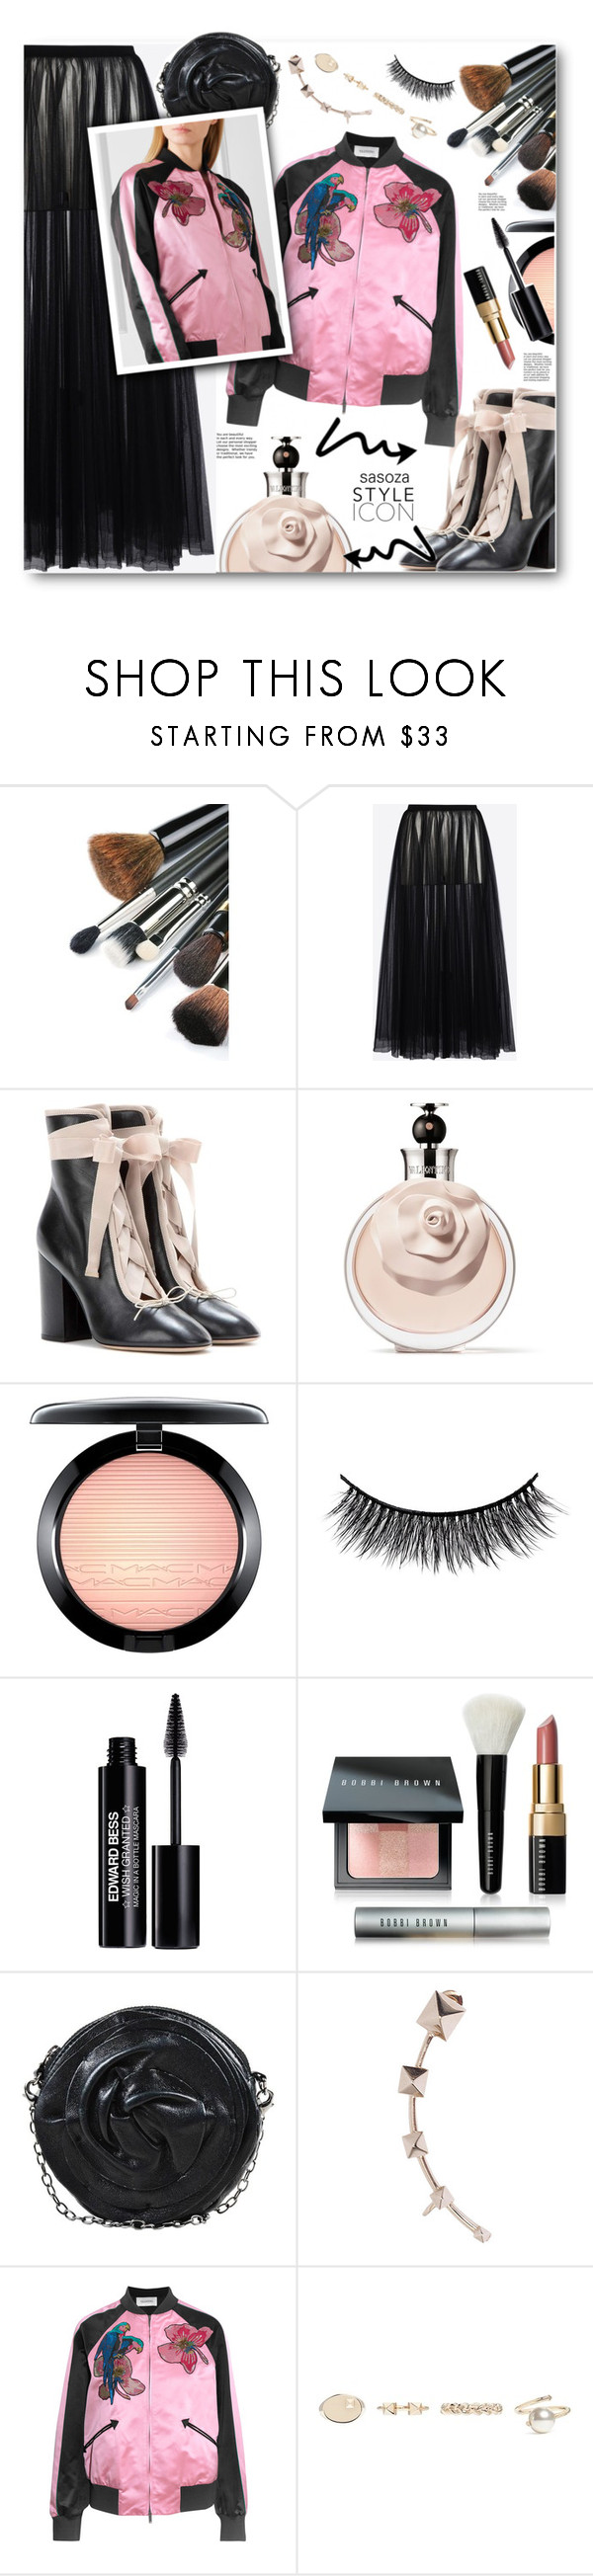 """Valentino outfit by sasoza"" by sasooza ❤ liked on Polyvore featuring Valentino, MAC Cosmetics, Battington, Edward Bess and Bobbi Brown Cosmetics"